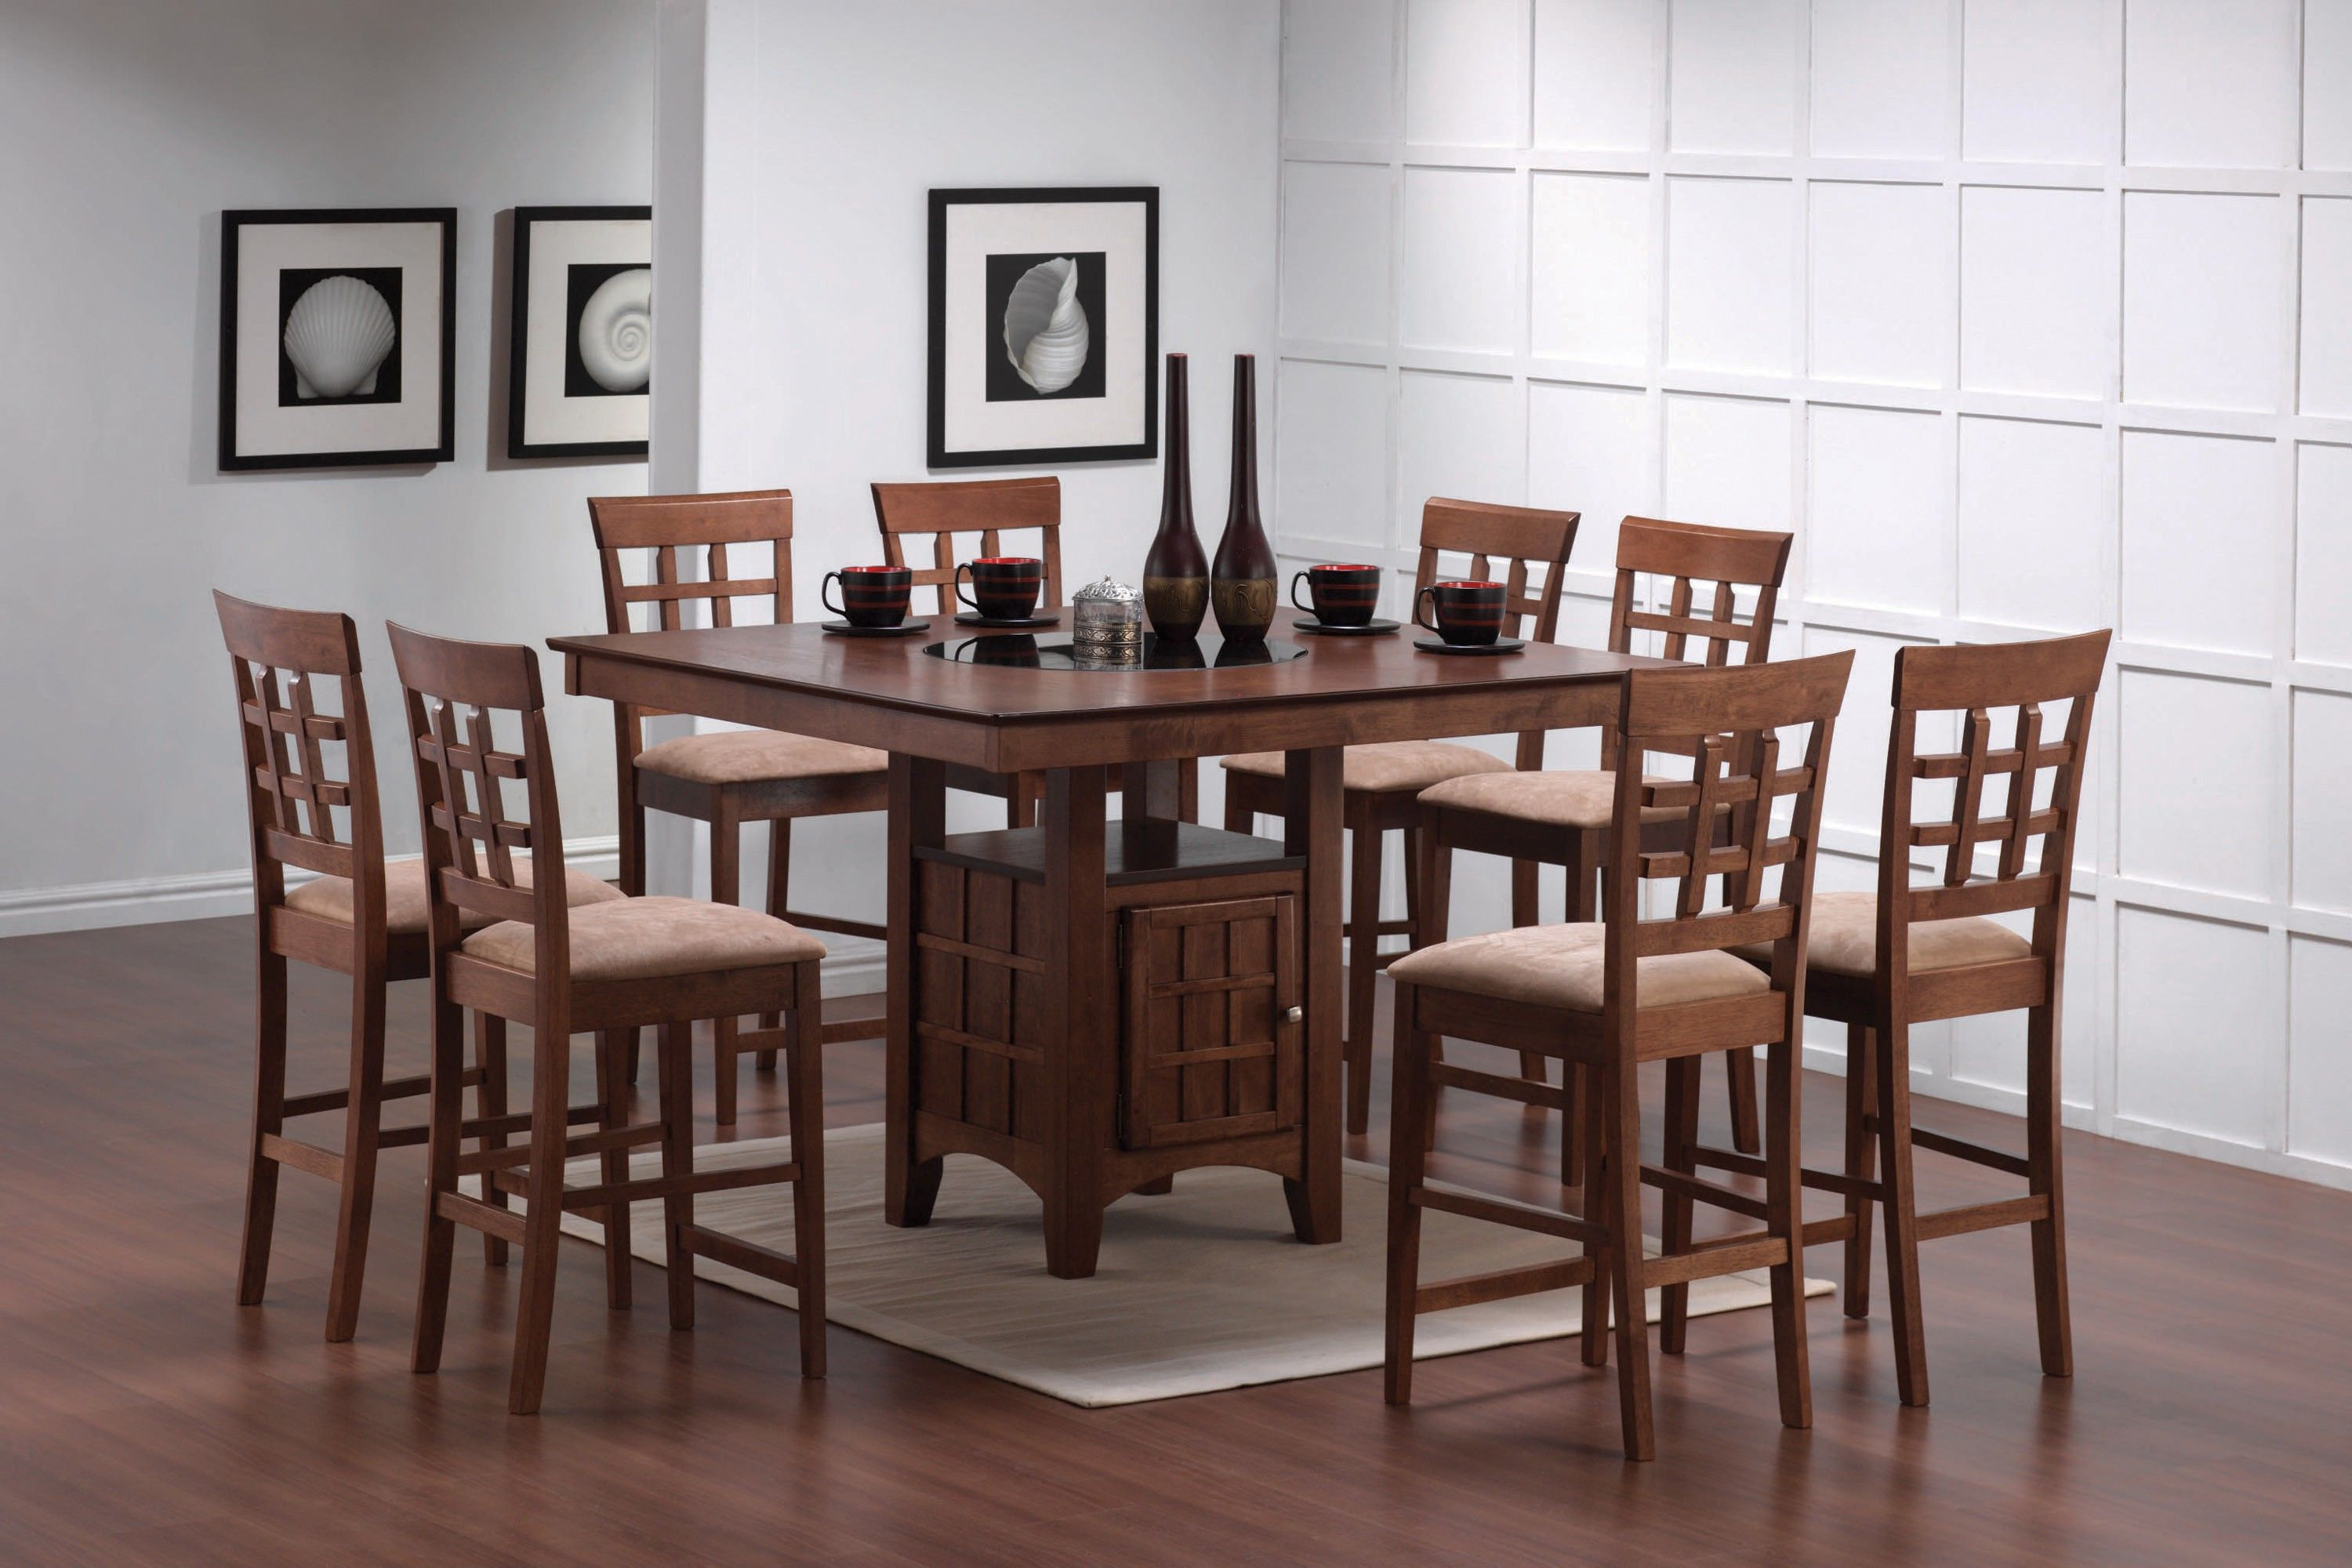 Coaster 101438 101209 Mix Match 9 Pcs Walnut Counter Height Dining Awesome 9 Pcs Dining Room Set Design Inspiration